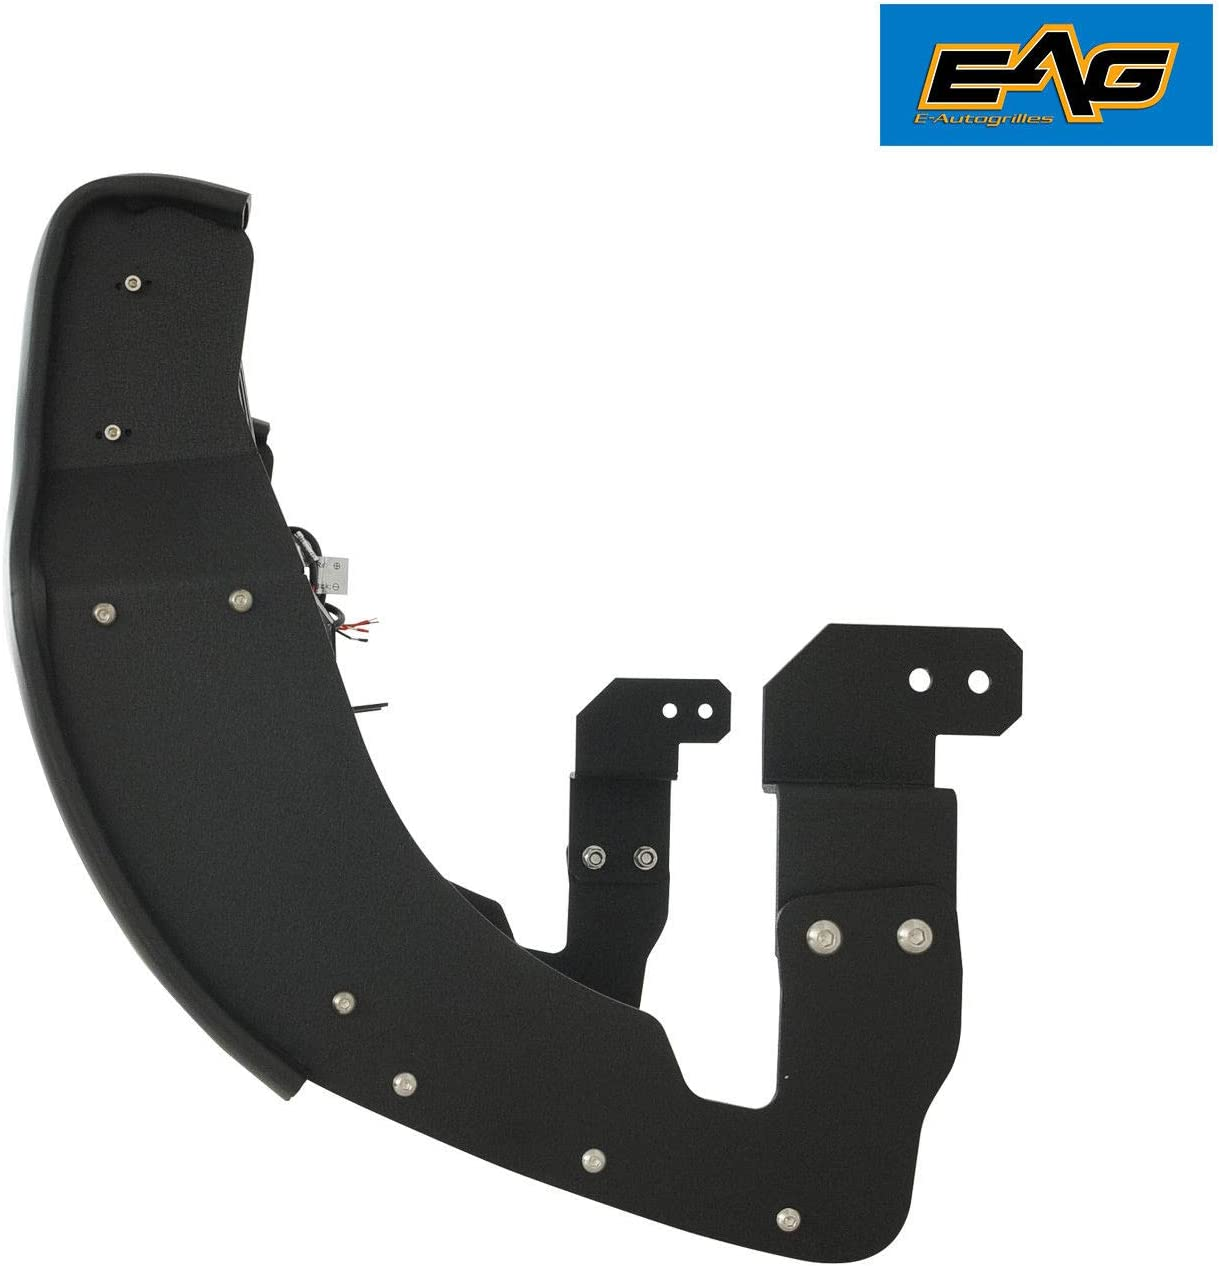 EAG Fit for 2011-2016 Ford F-250//F-350 EAG Double 32 LED Bull Bar LED Lights Included